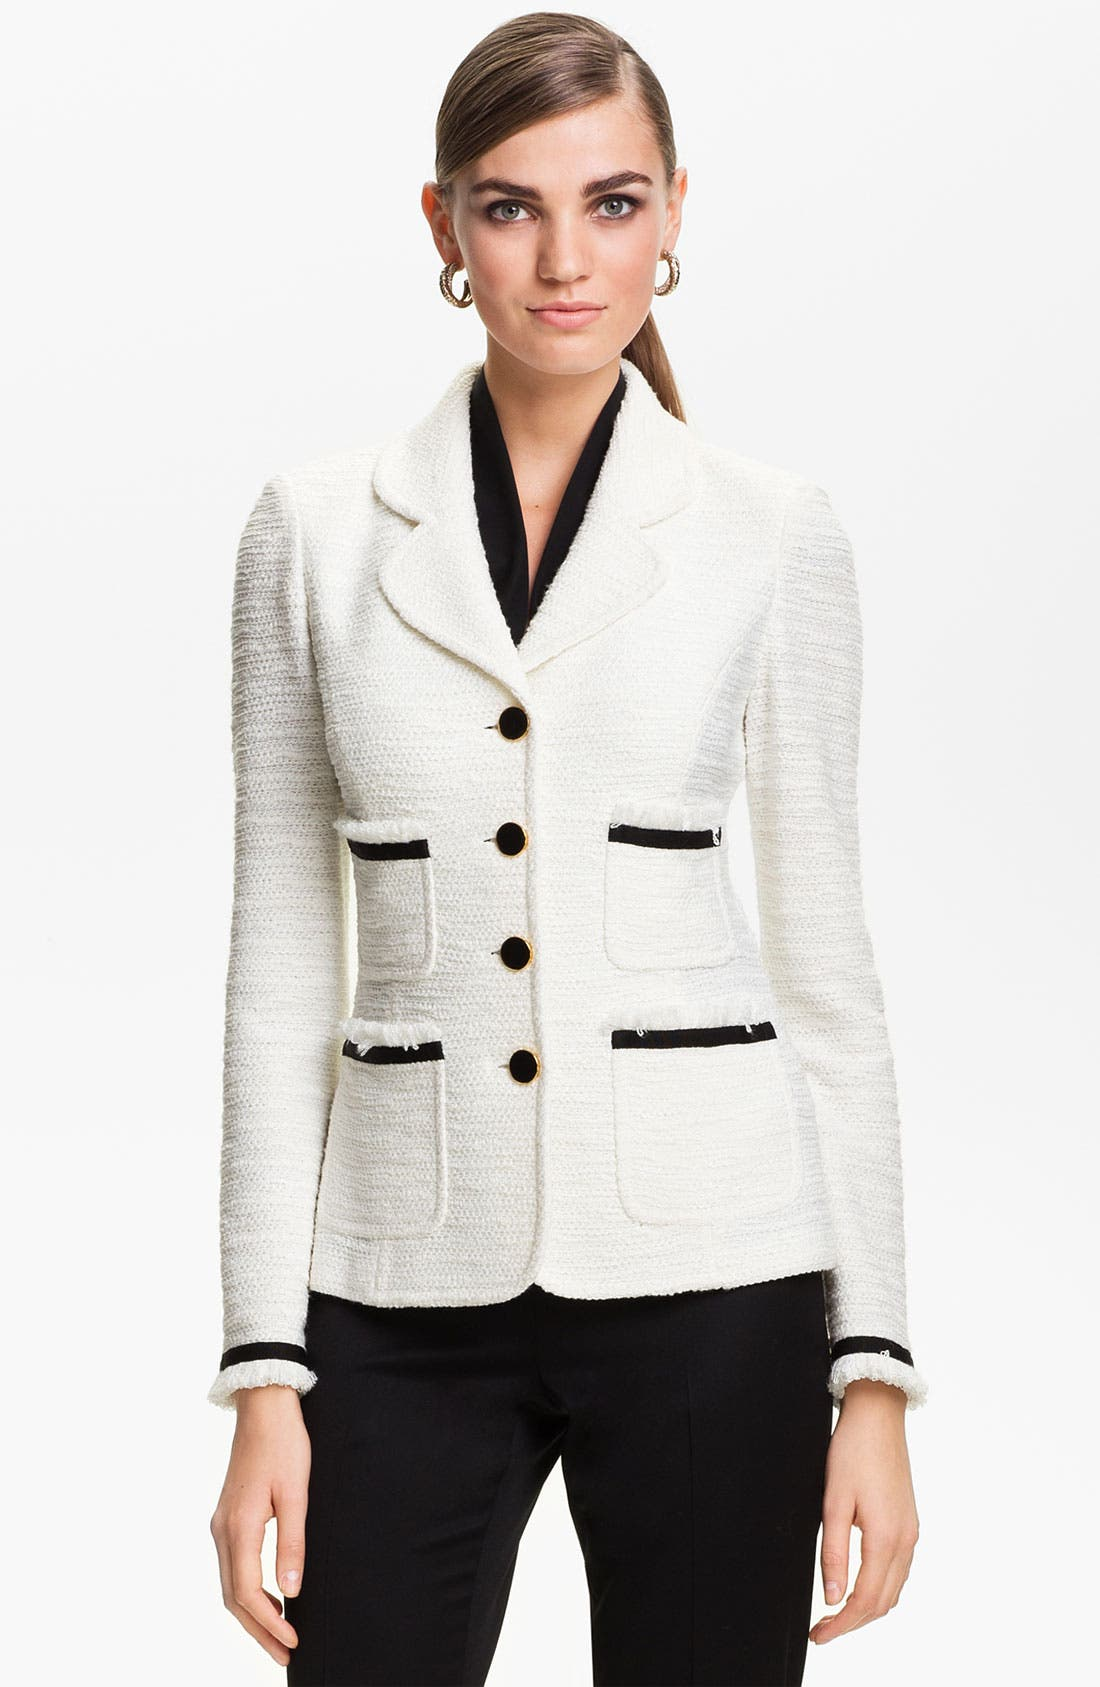 Alternate Image 1 Selected - St. John Collection 'New Shantung' Jacket